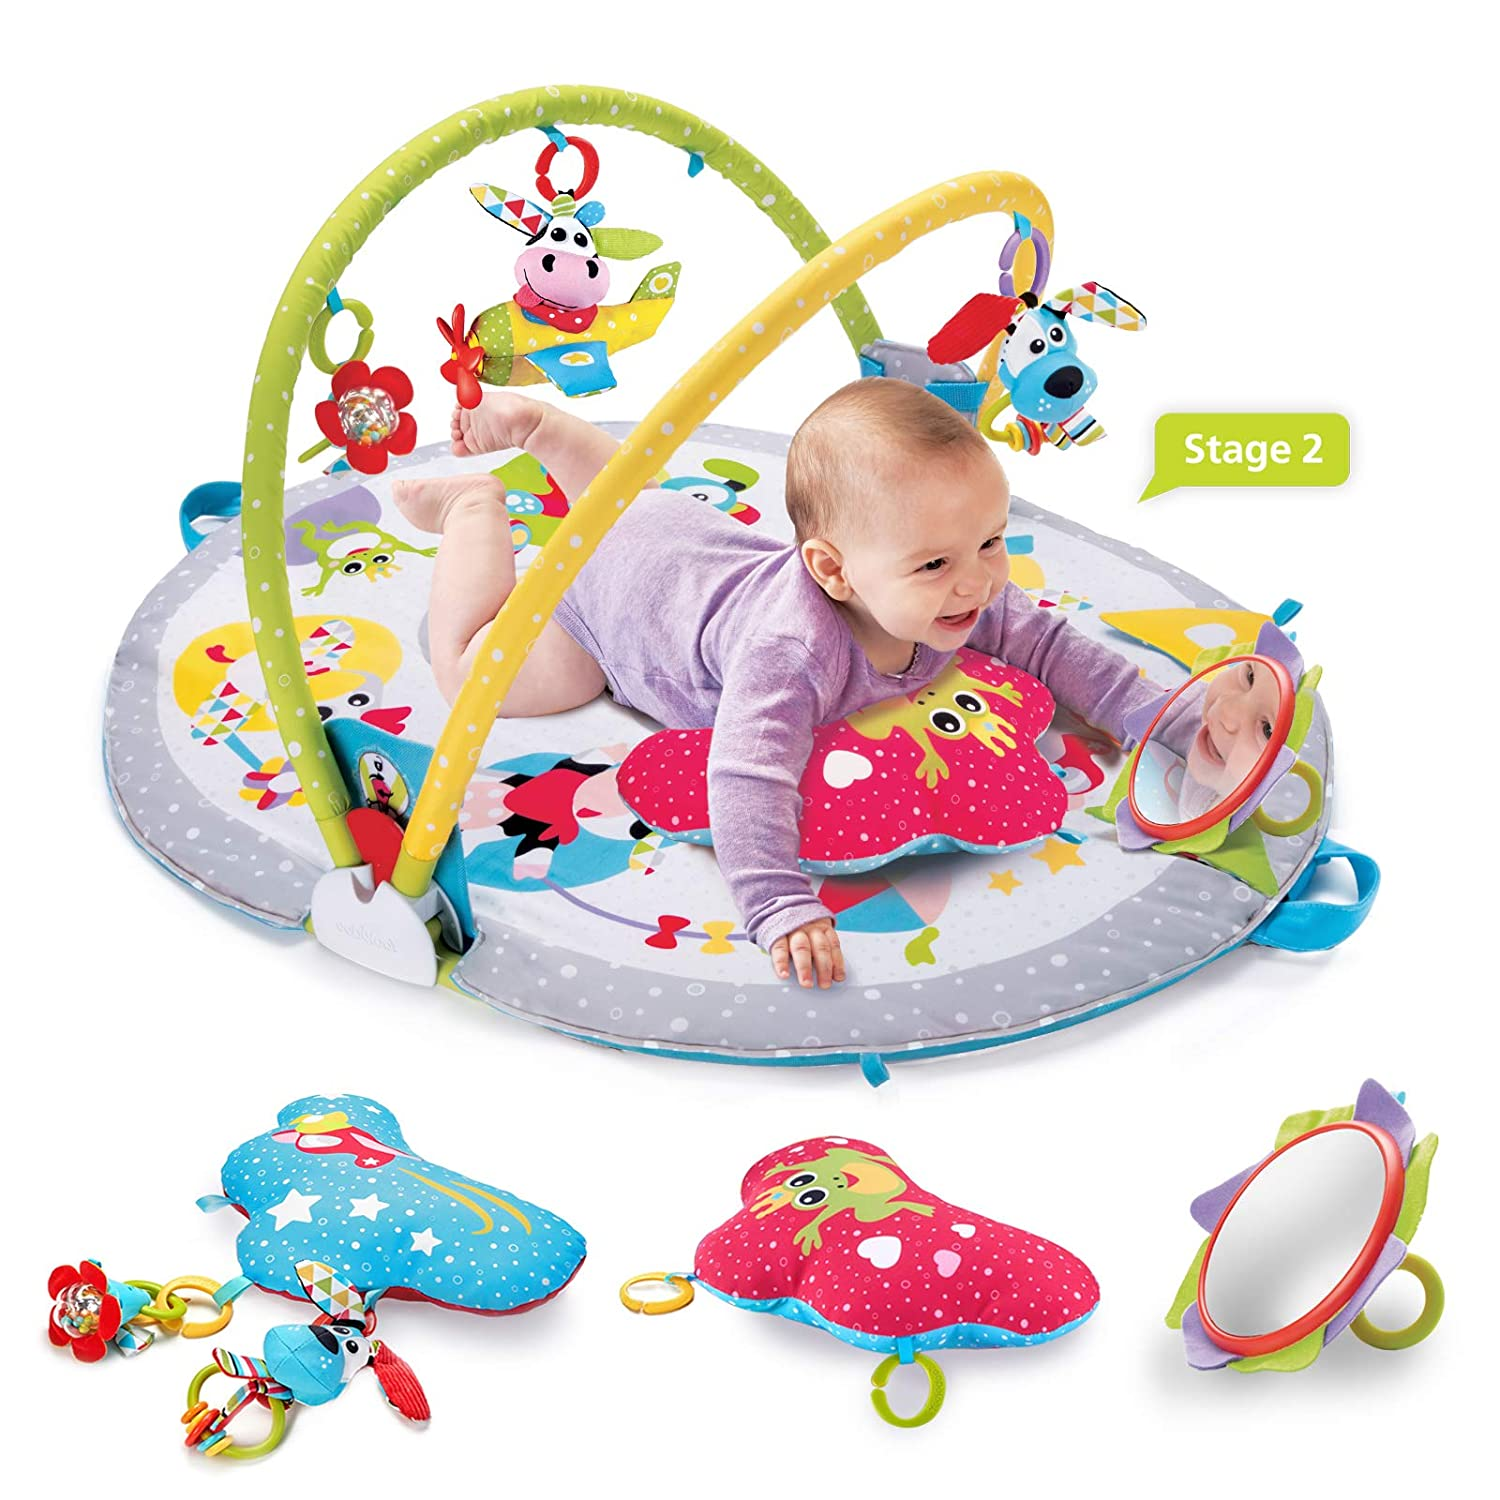 Age 0-12 Months Yookidoo Baby Gym Activity Play Mat 3 Stage Accessory Gym with More Than 20 Development Infant Activities